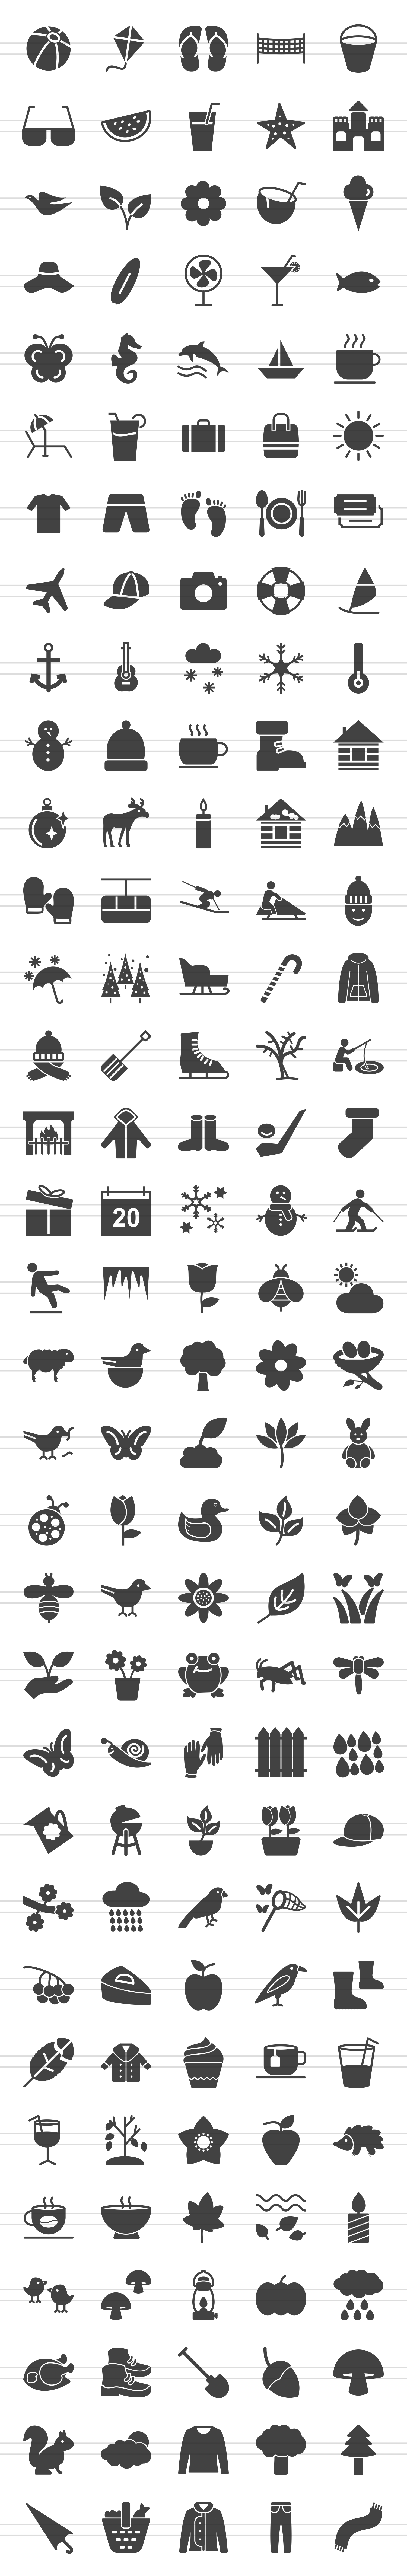 166 Four Seasons Glyph Icons example image 2